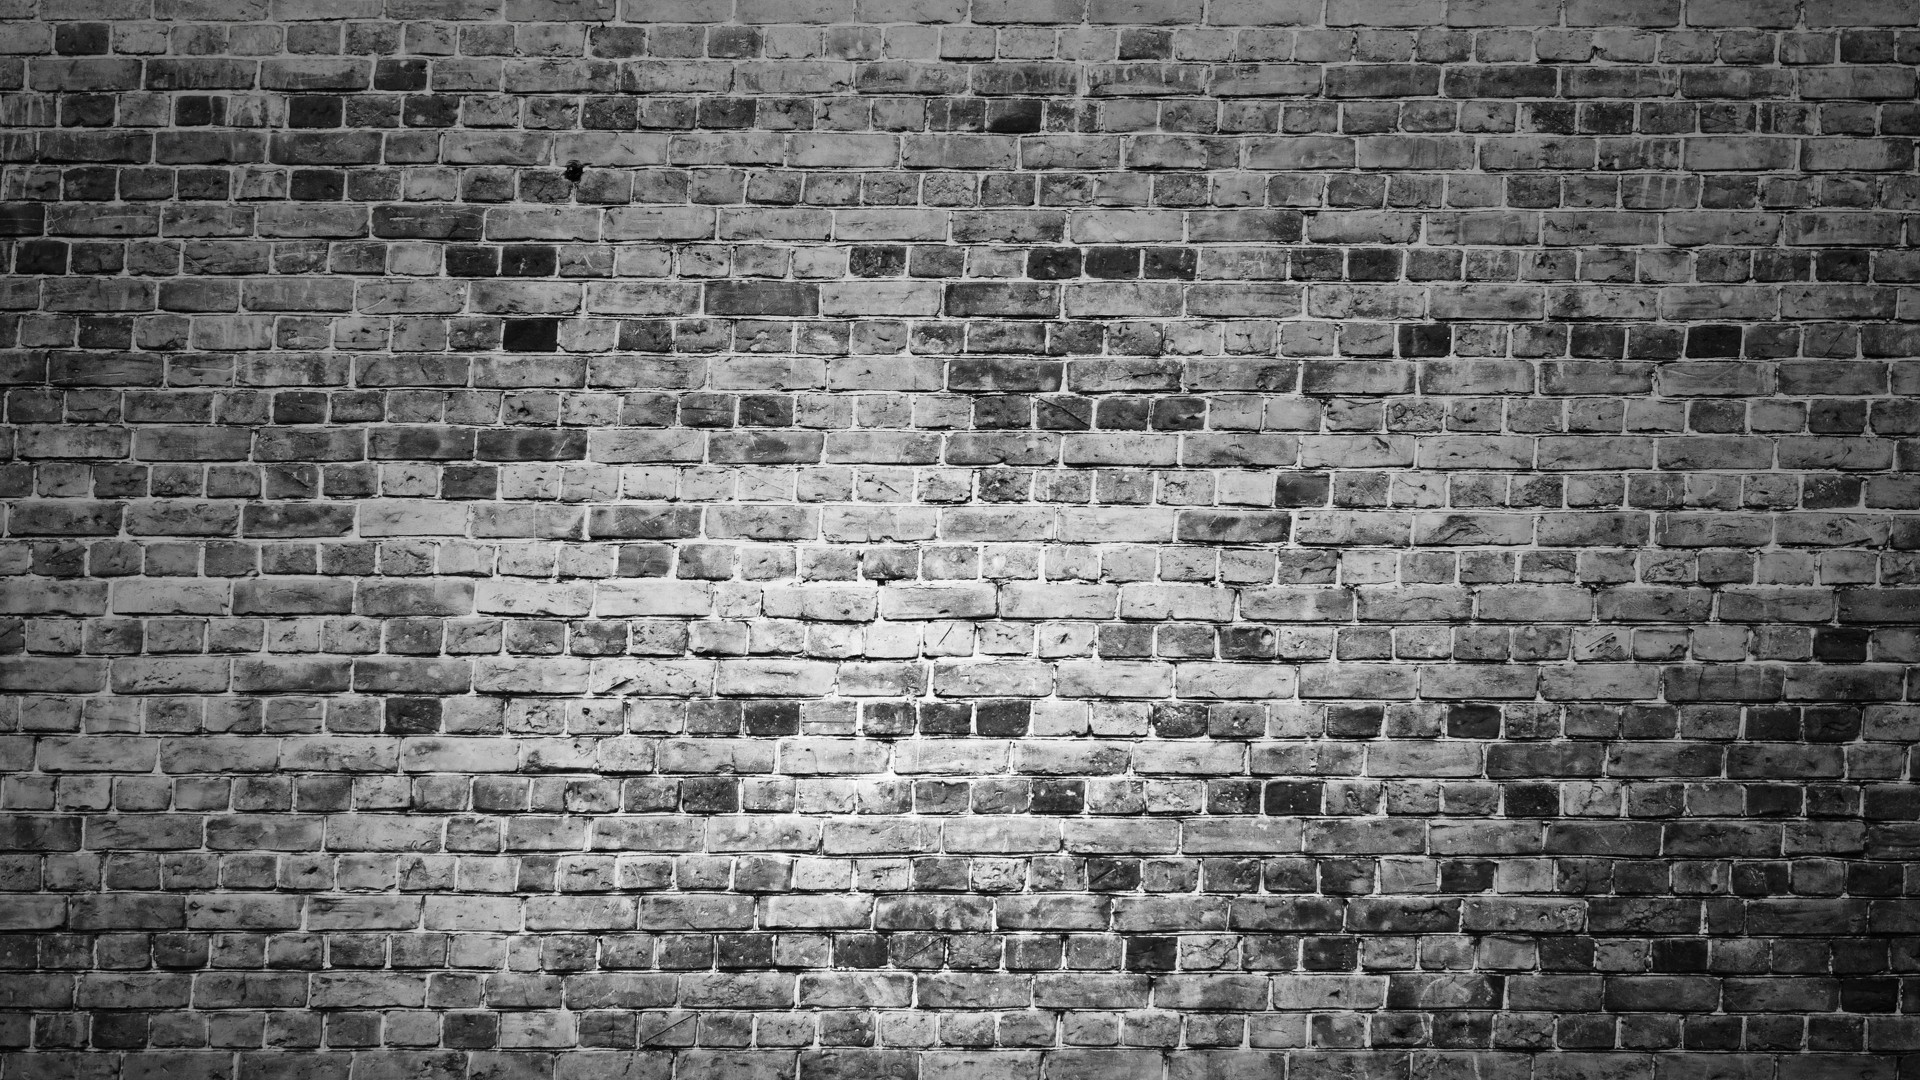 White Brick Wallpaper Picture hd